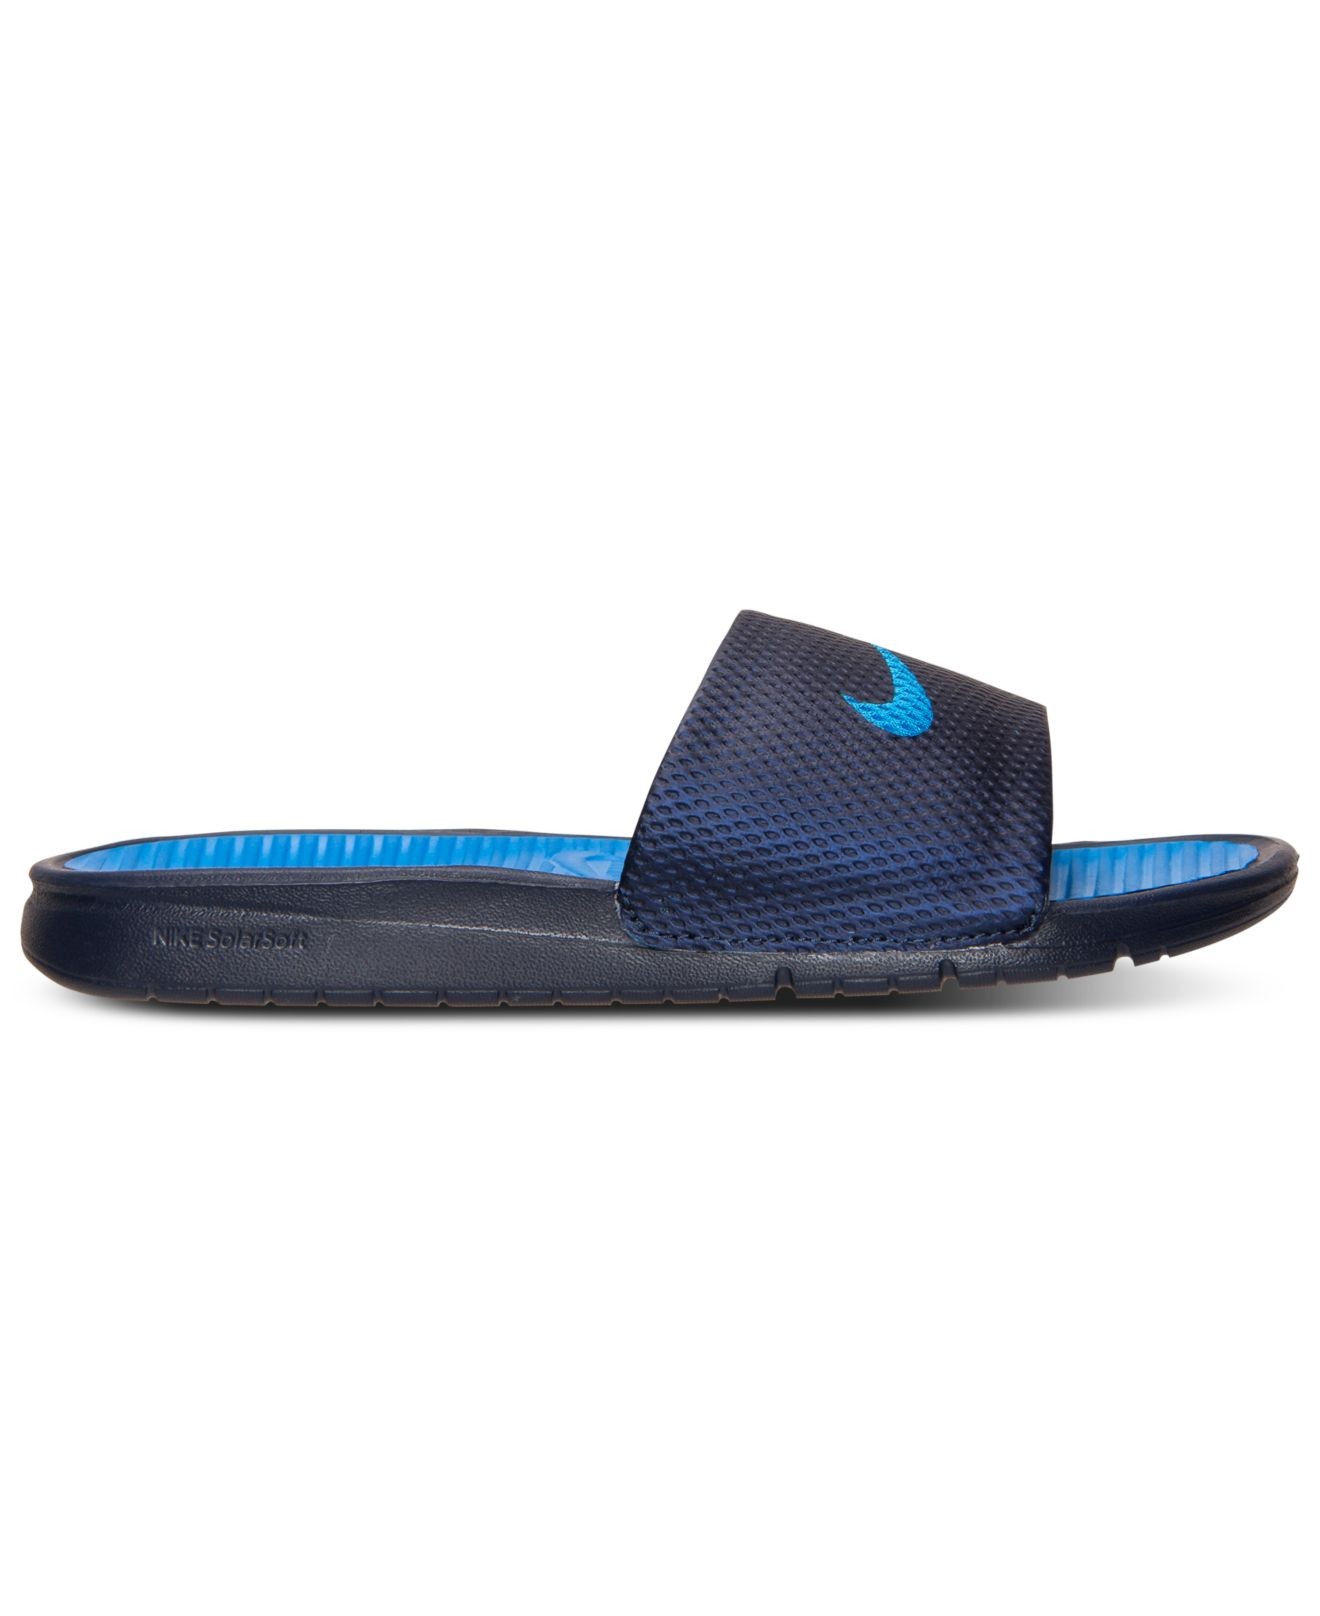 73b0ed8d8ec ... spain lyst nike mens benassi solarsoft slide sandals from finish line  bbca0 6699d